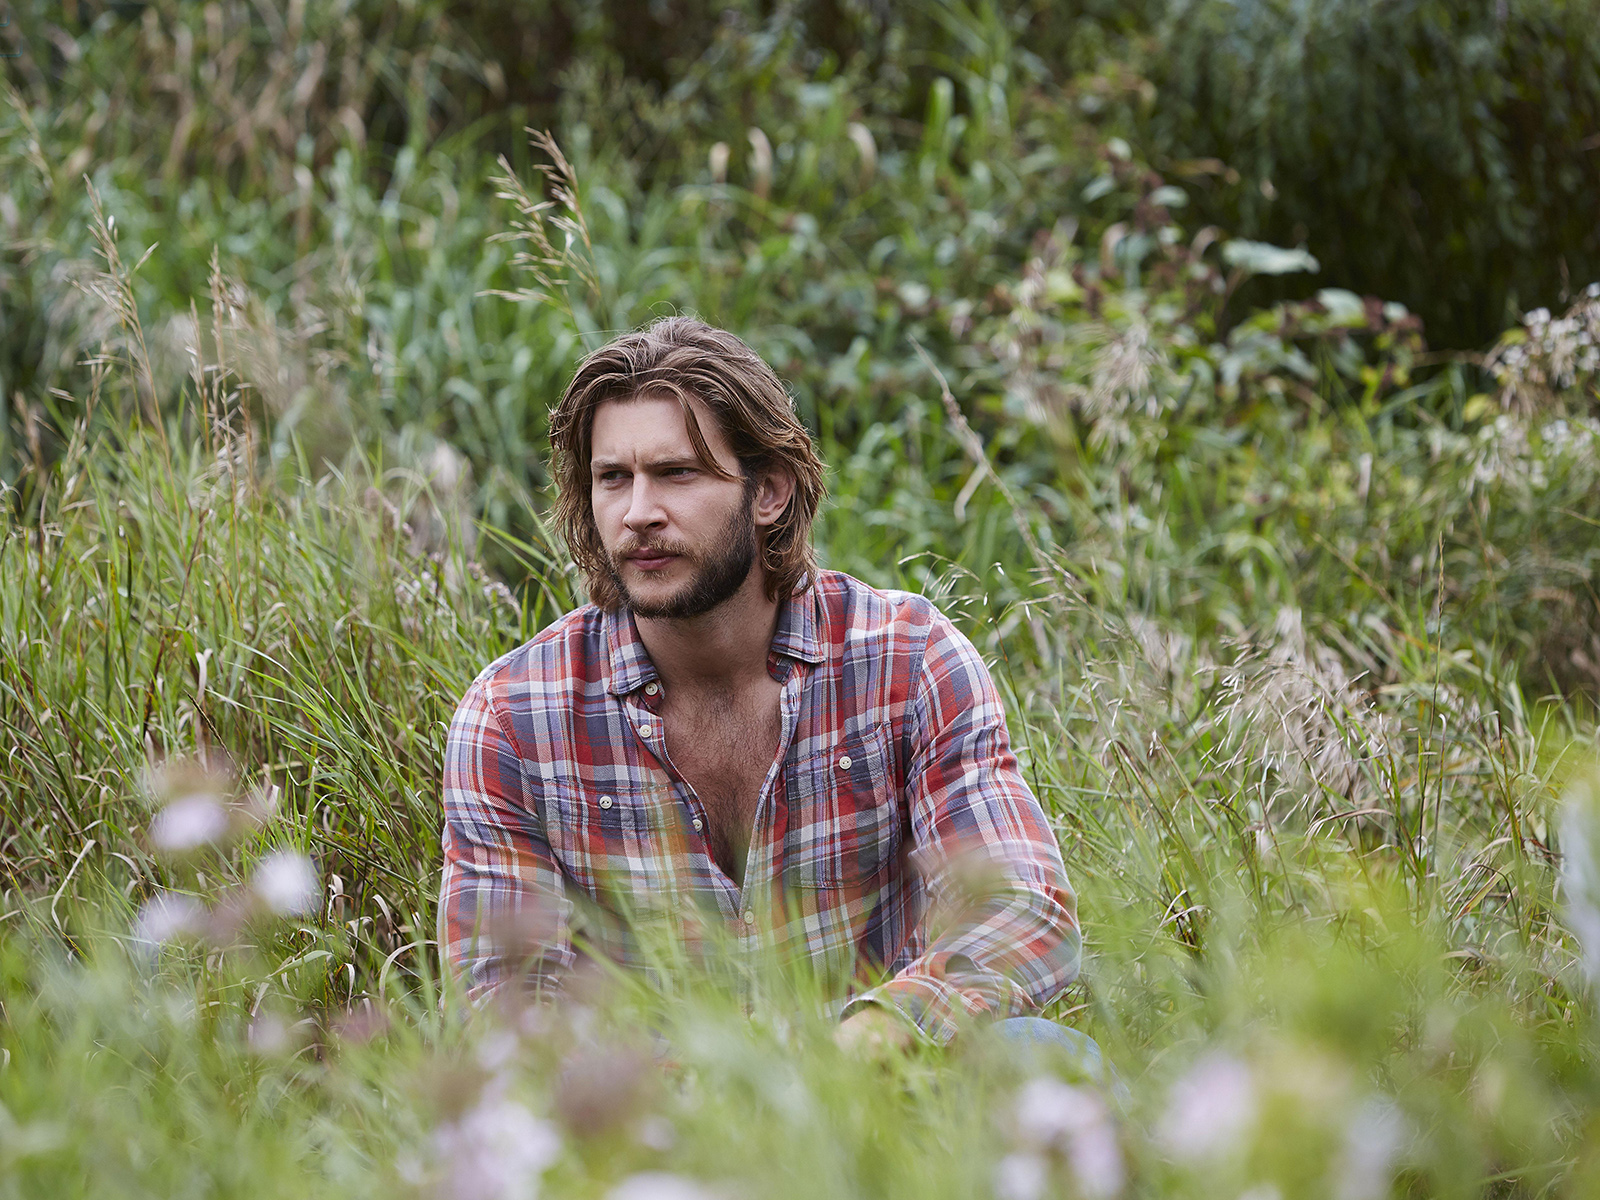 грейстон холтgreyston holt imdb, greyston holt height, greyston holt supernatural, greyston holt wikipedia, greyston holt, greyston holt wife, greyston holt instagram, грейстон холт, greyston holt twitter, грейстон холт личная жизнь, грейстон холт википедия, greyston holt and laura vandervoort, greyston holt cedar cove, грейстон холт биография, грейстон холт инстаграм, greyston holt married, greyston holt once upon a time, greyston holt freundin, greyston holt girlfriend 2015, greyston holt shirtless